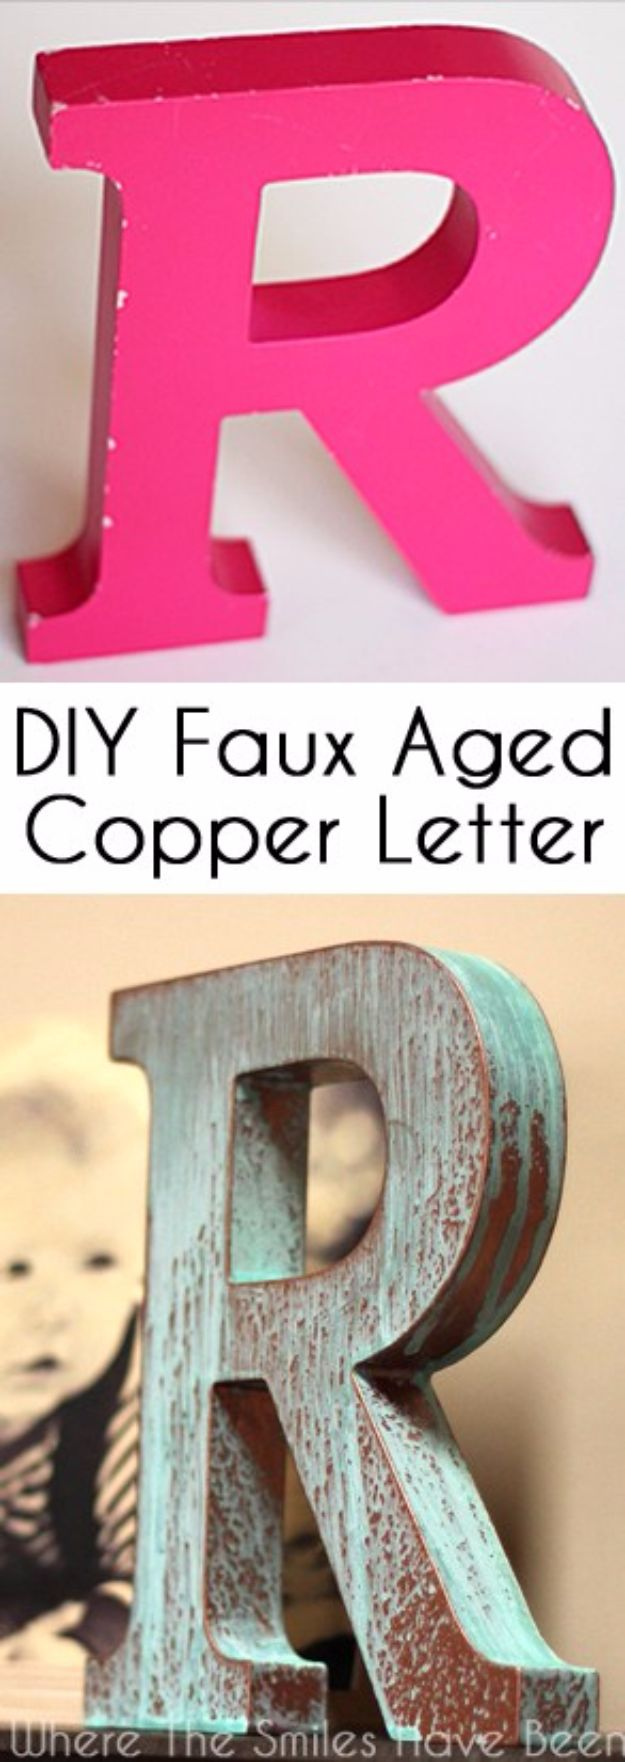 DIY Wall Letters and Word Signs - DIY Faux Copper Letter Aged with Blue Patina - Initials Wall Art for Creative Home Decor Ideas - Cool Architectural Letter Projects and Wall Art Tutorials for Living Room Decor, Bedroom Ideas. Girl or Boy Nursery. Paint, Glitter, String Art, Easy Cardboard and Rustic Wooden Ideas - DIY Projects and Crafts by DIY JOY http://diyjoy.com/diy-letter-word-signs